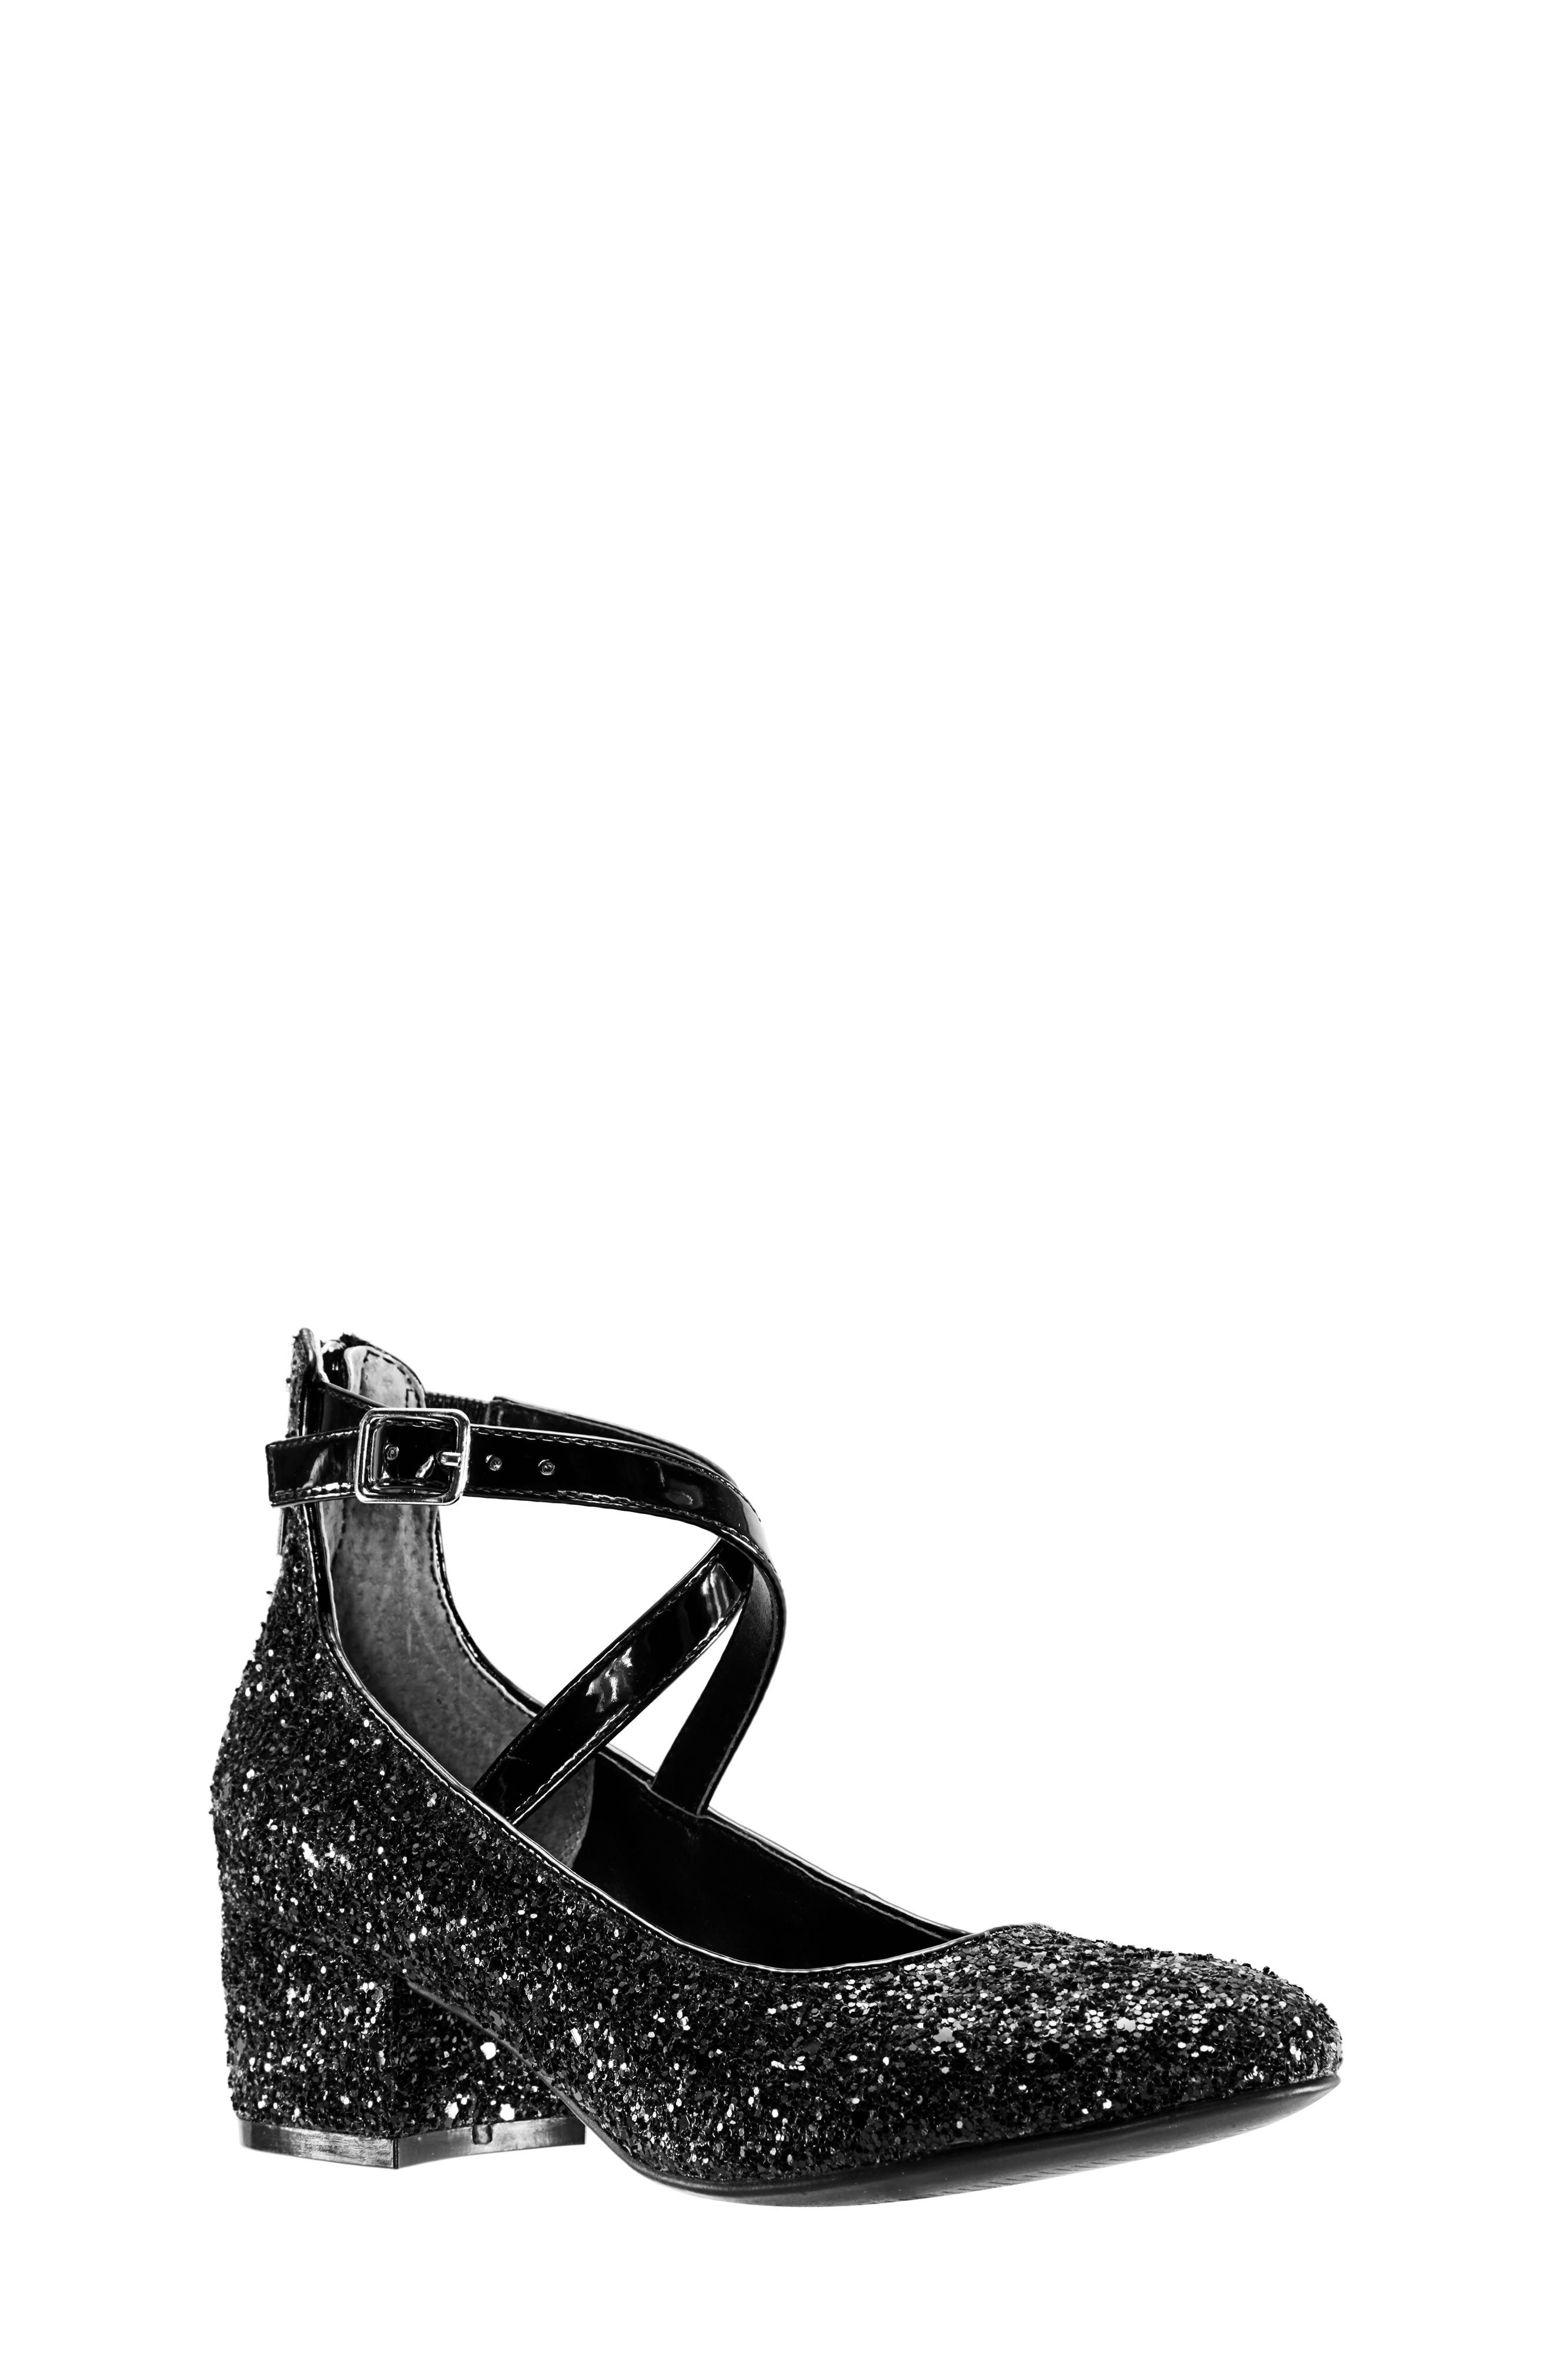 Deisy Glitter Block Heel Pump,                         Main,                         color, BLACK CHUNK GLITTER/ PATENT